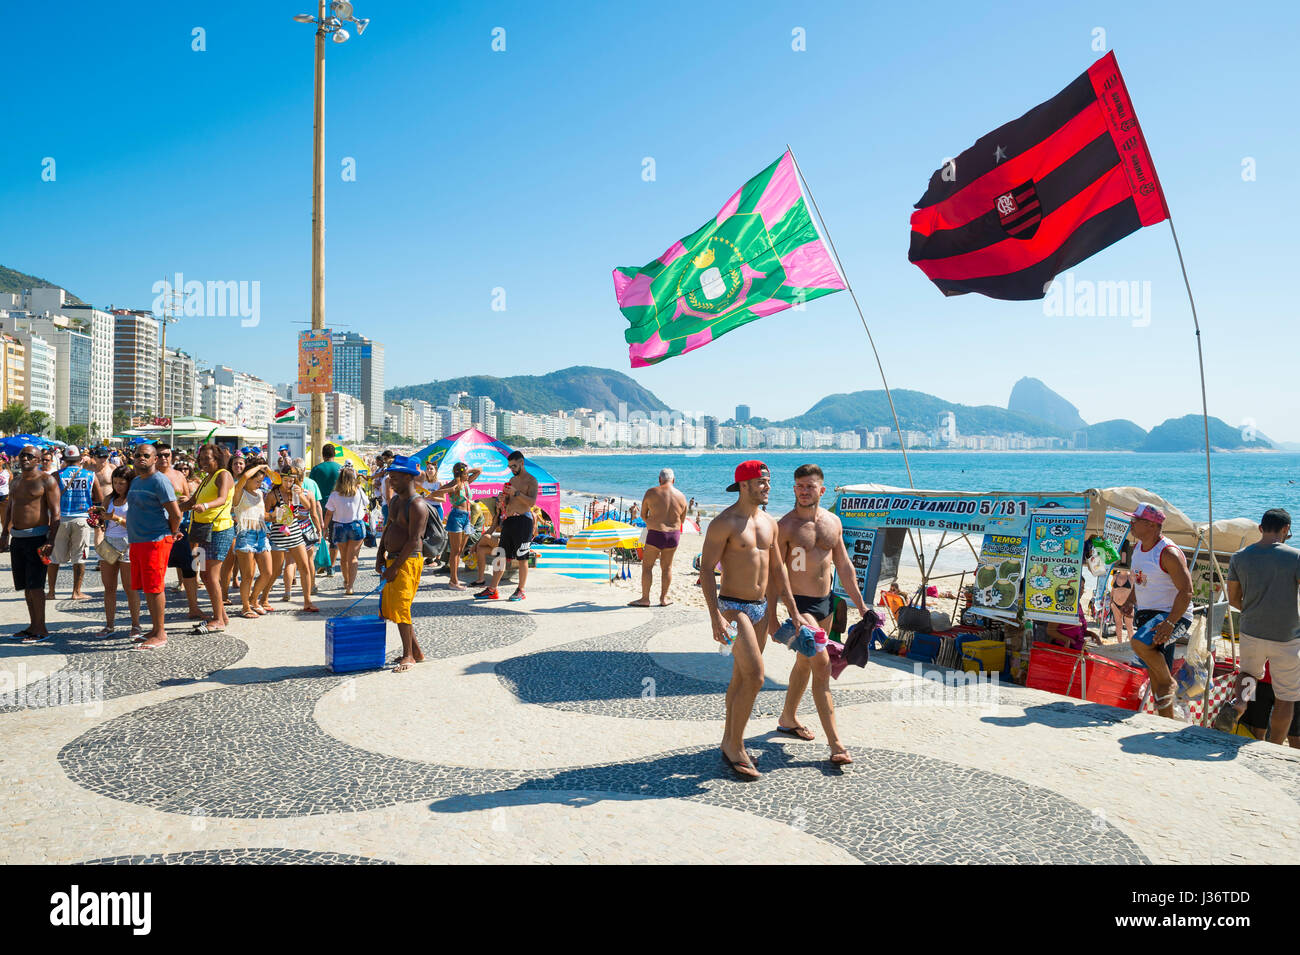 Rio De Janeiro March 15 2017 Crowds Of Young People